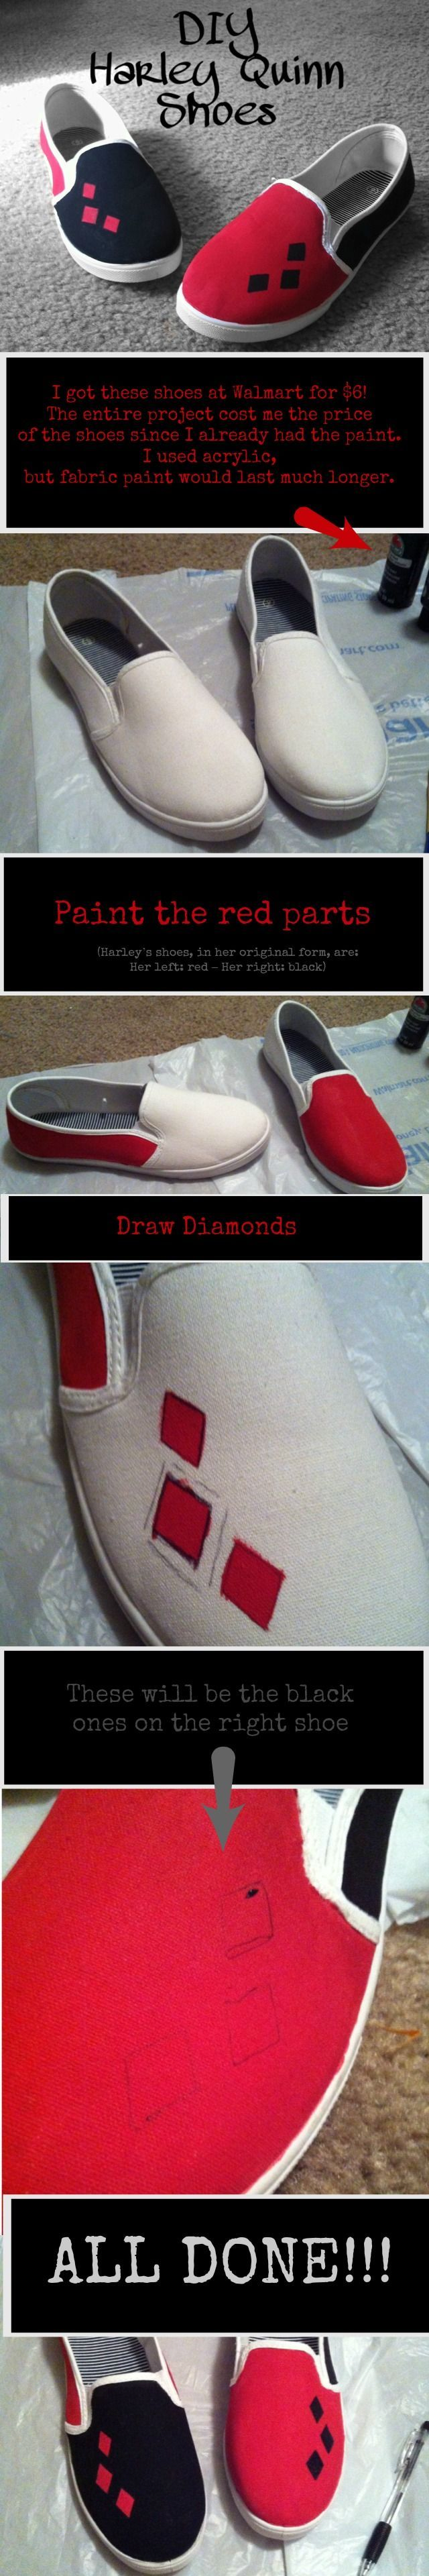 harley quiin shoes